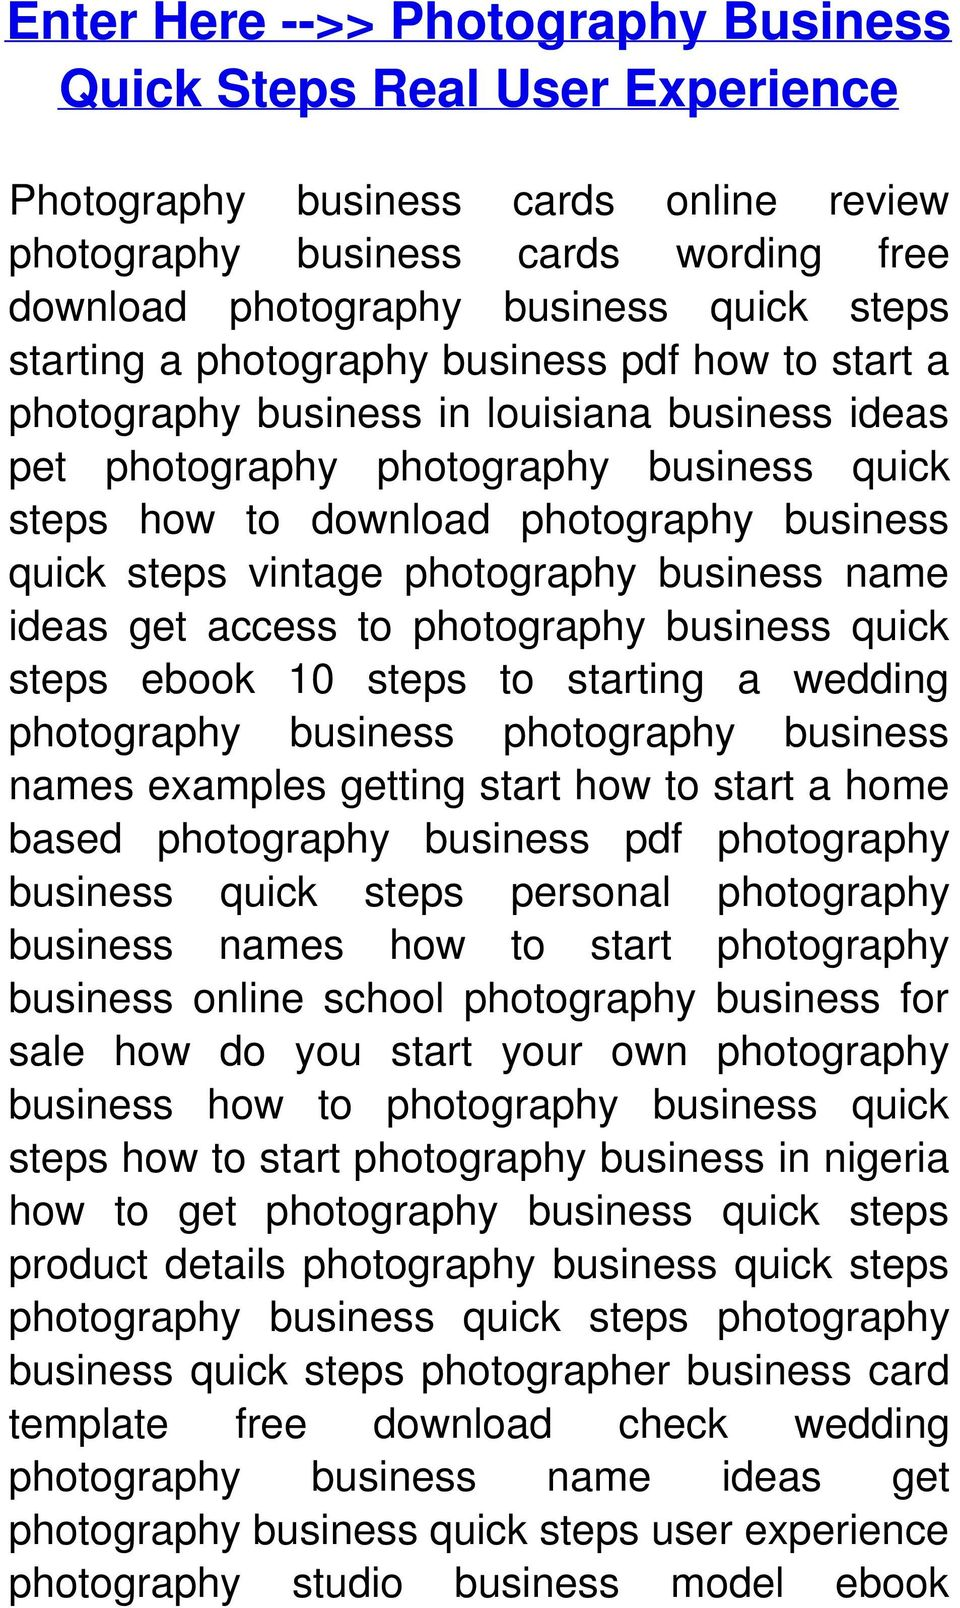 Home based photography business plan